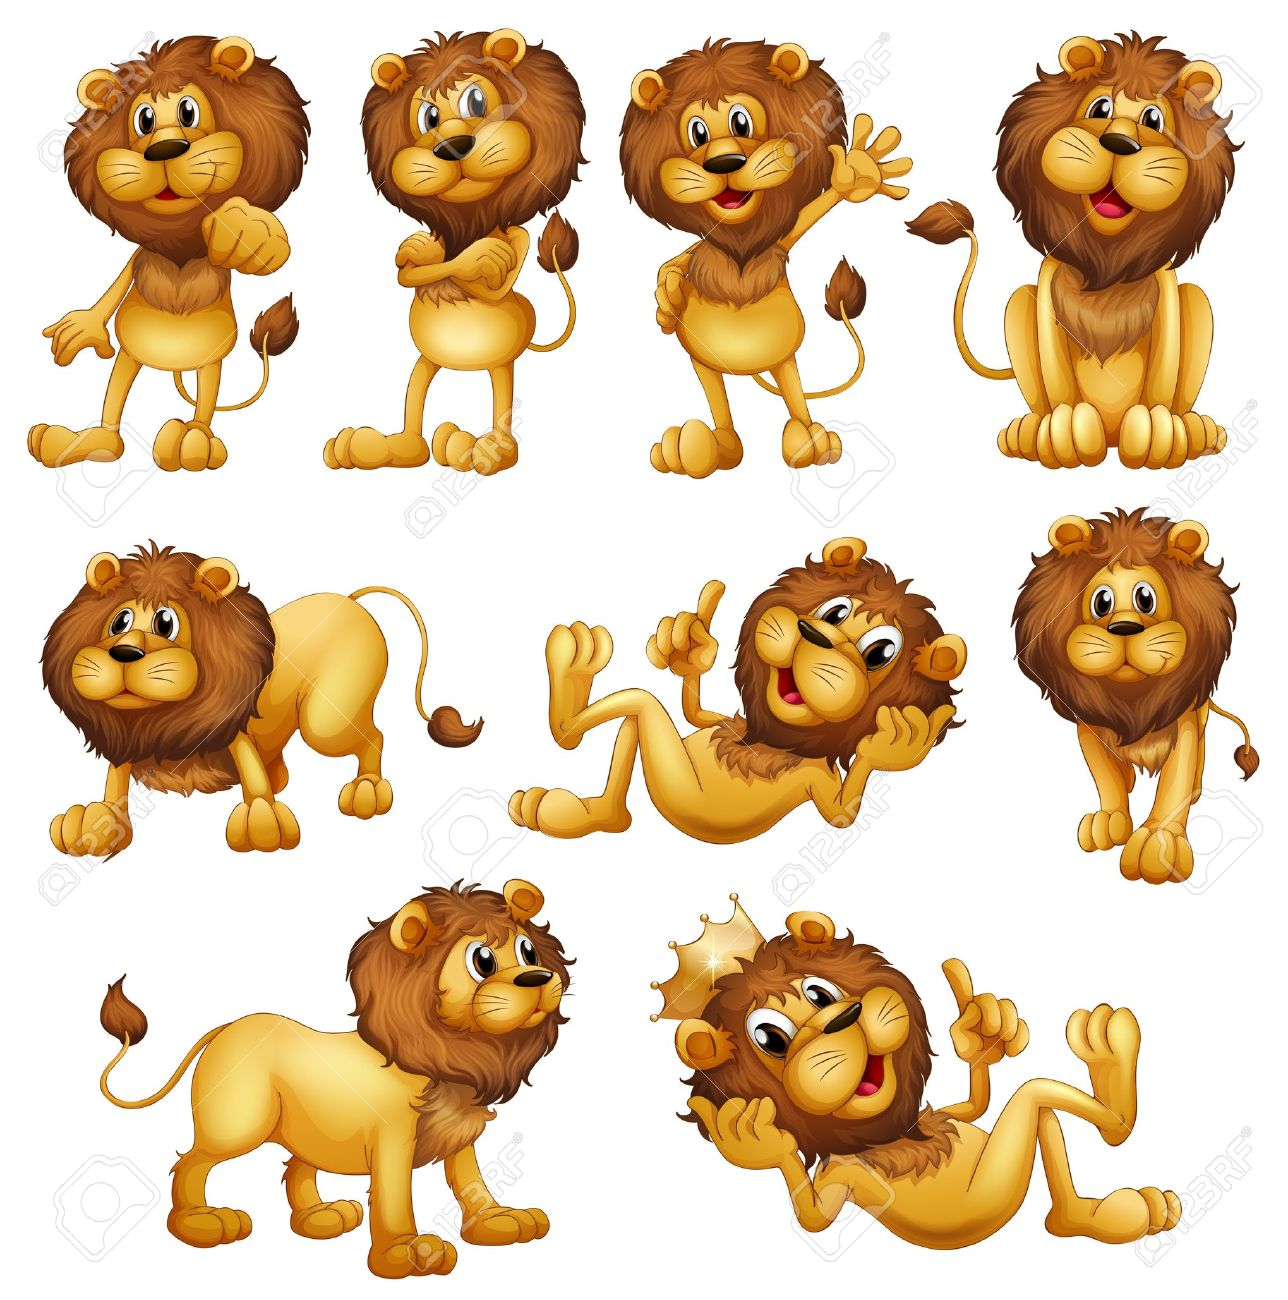 Illustrations of the lions in different positions on a white background Stock Vector - 19390015